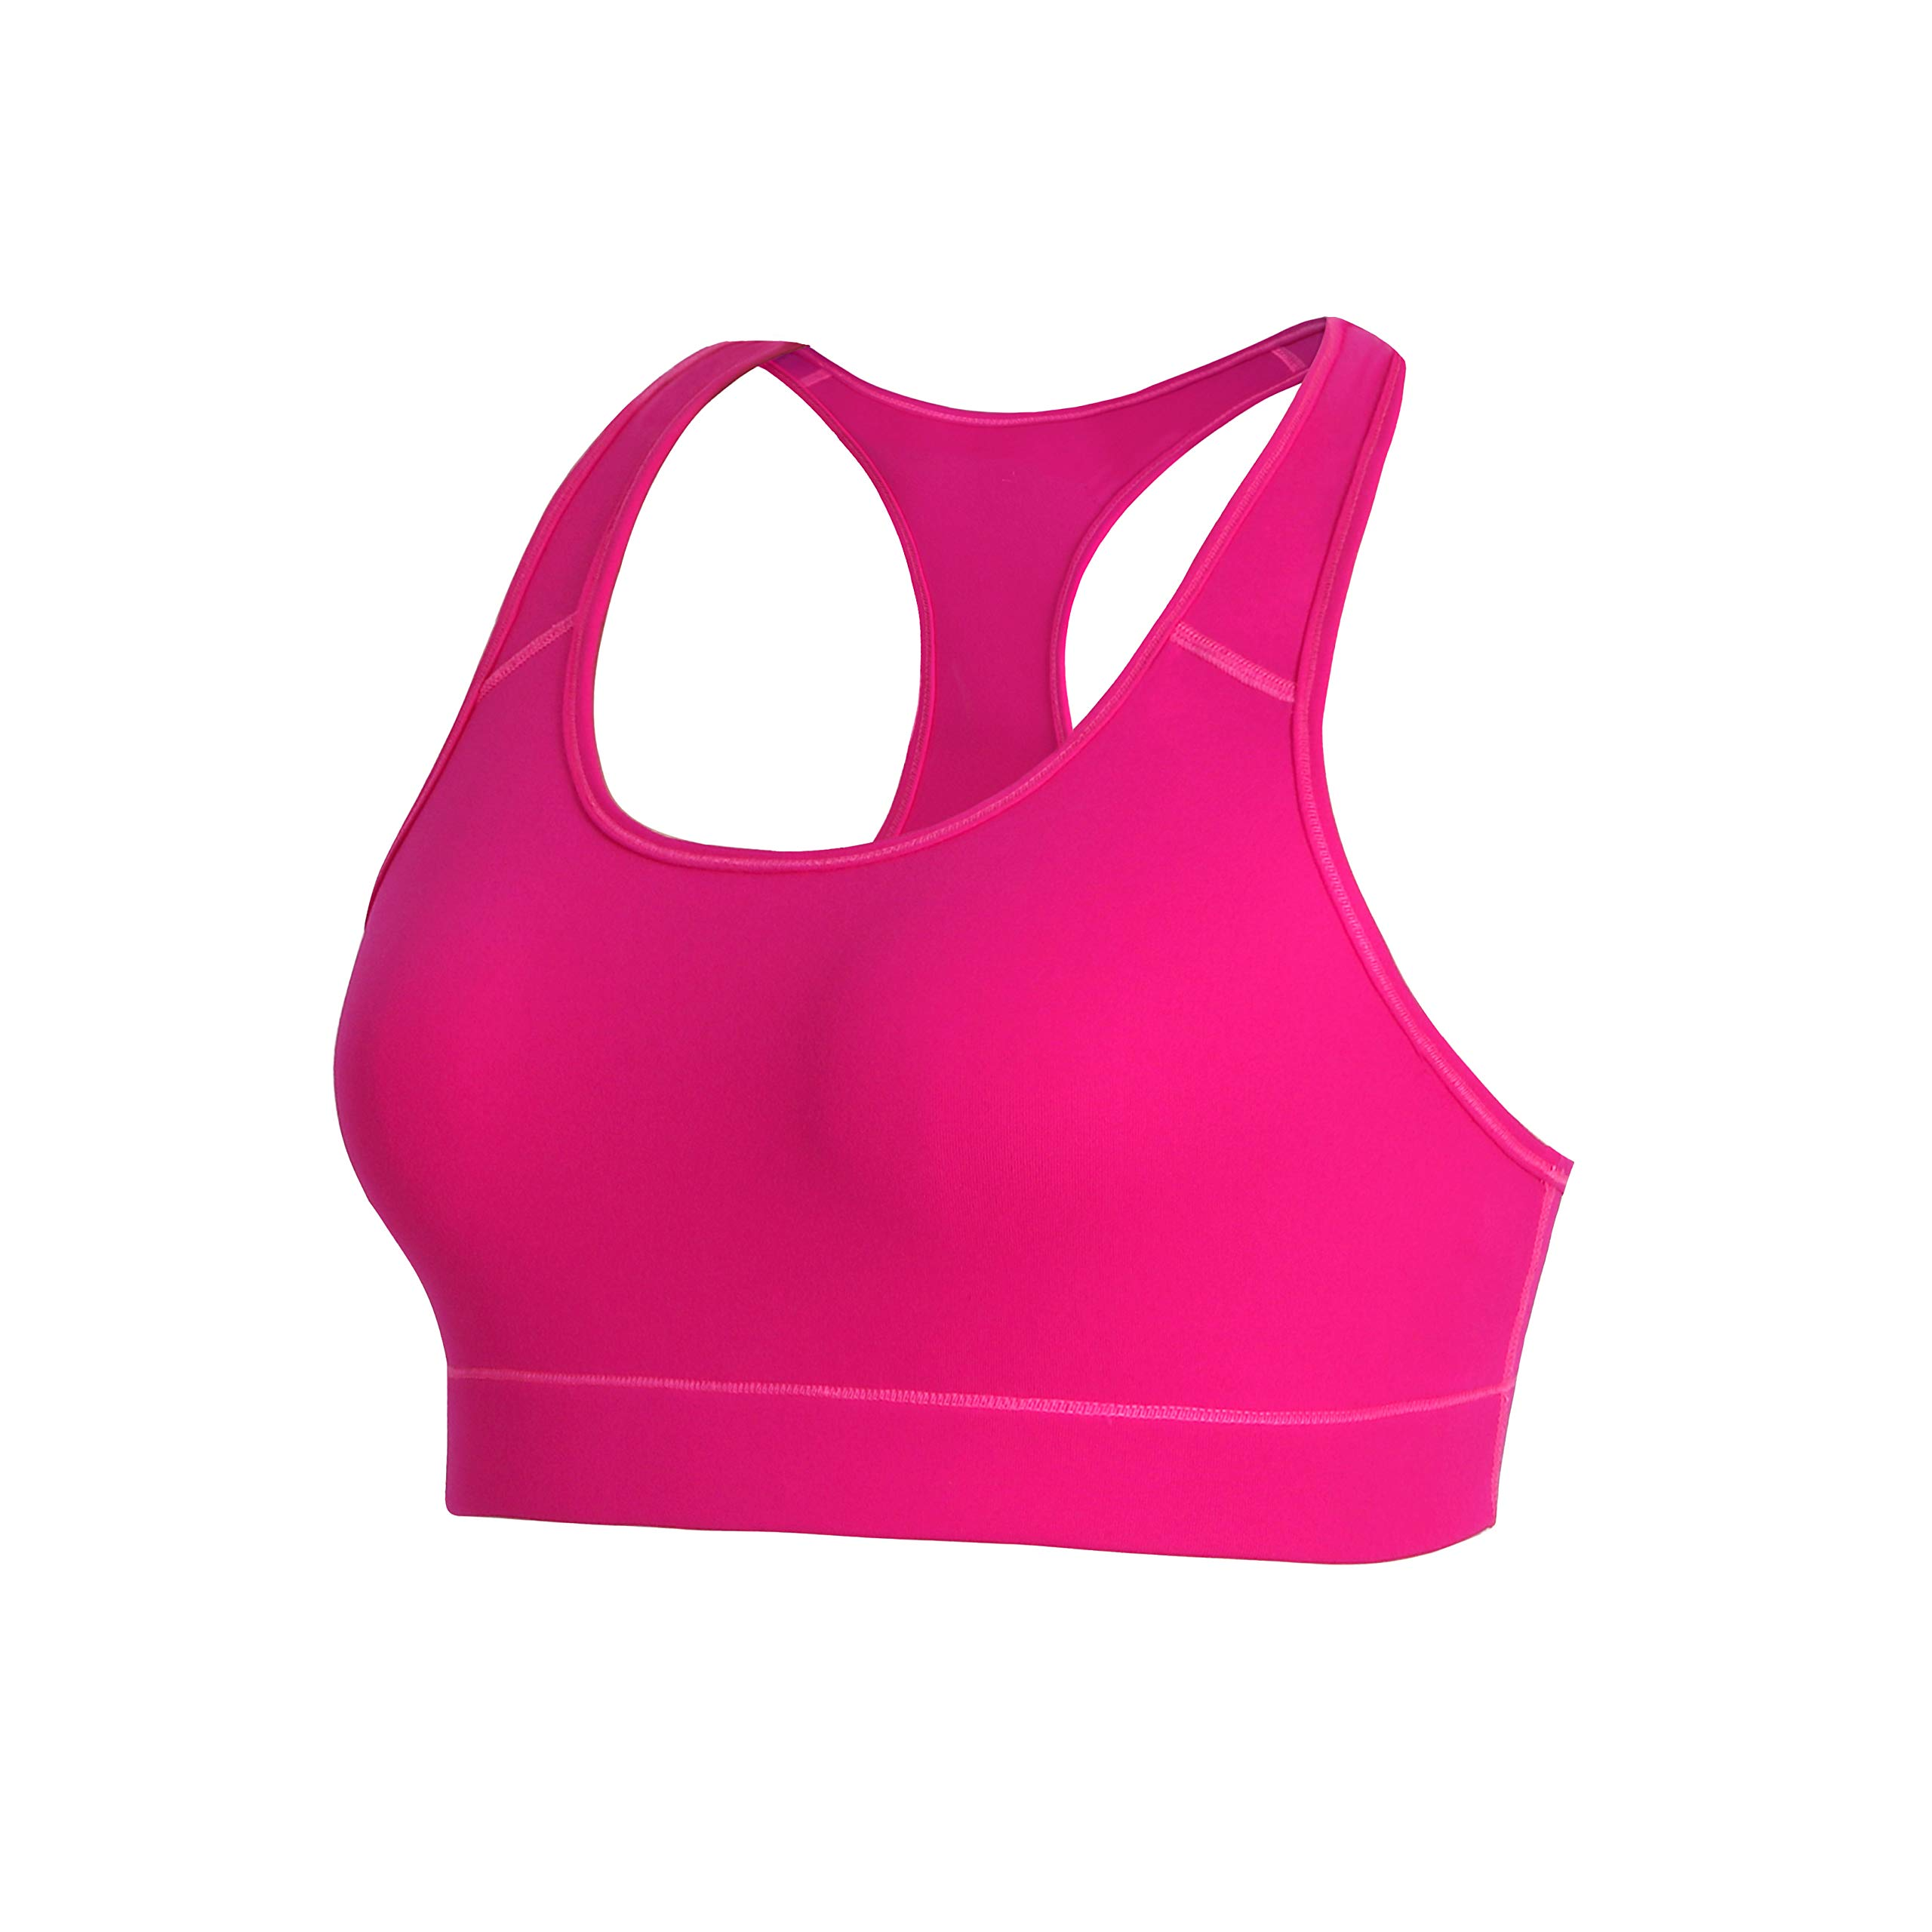 BUBBLELIME Racerback Sports Bras for Women Seamless High Impact Support Activewear Workout Fitness Gym Yoga Bras